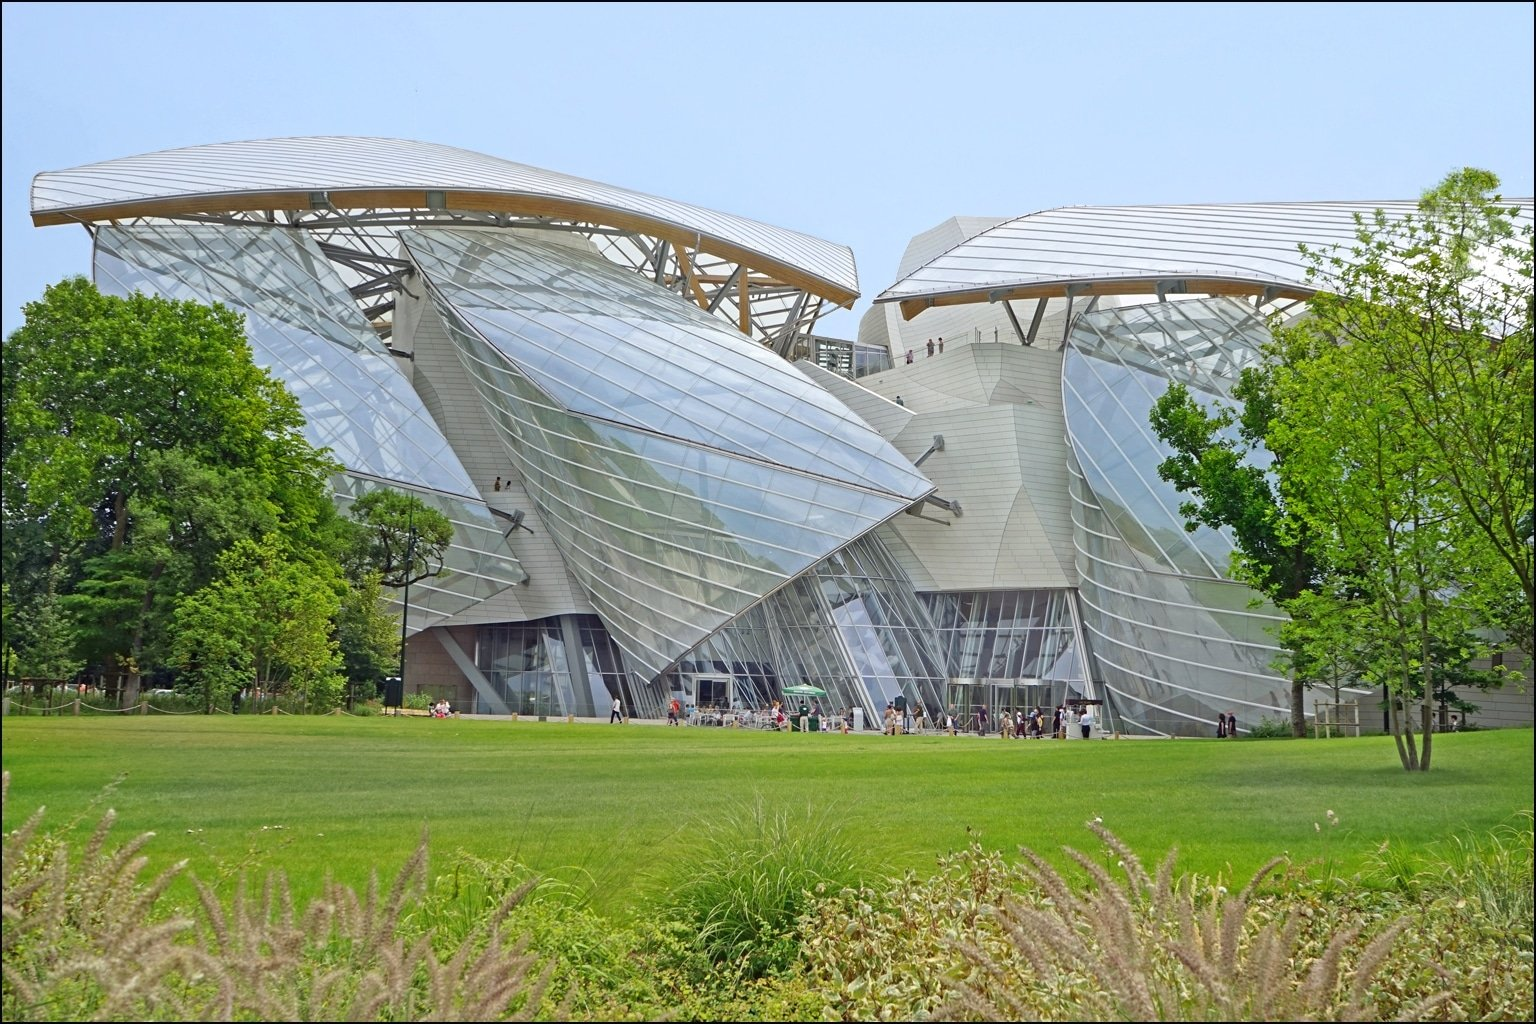 Things to do in Paris: Fondation Louis Vuitton